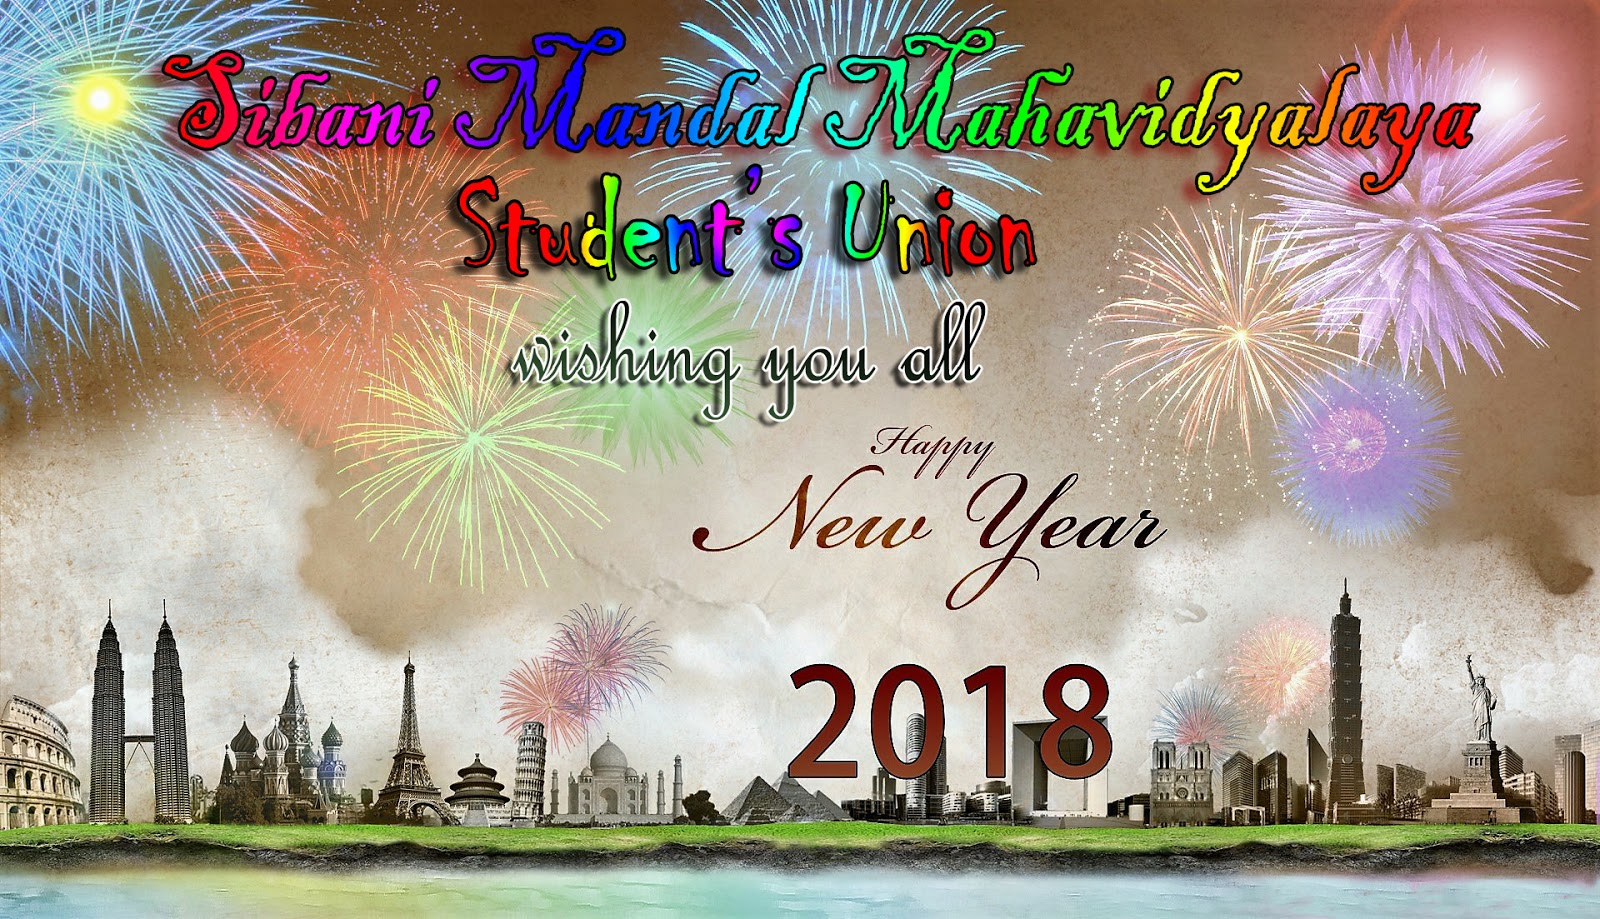 sibani mandal mahavidyalaya student union wishing you a very happy new year 2018 in advance